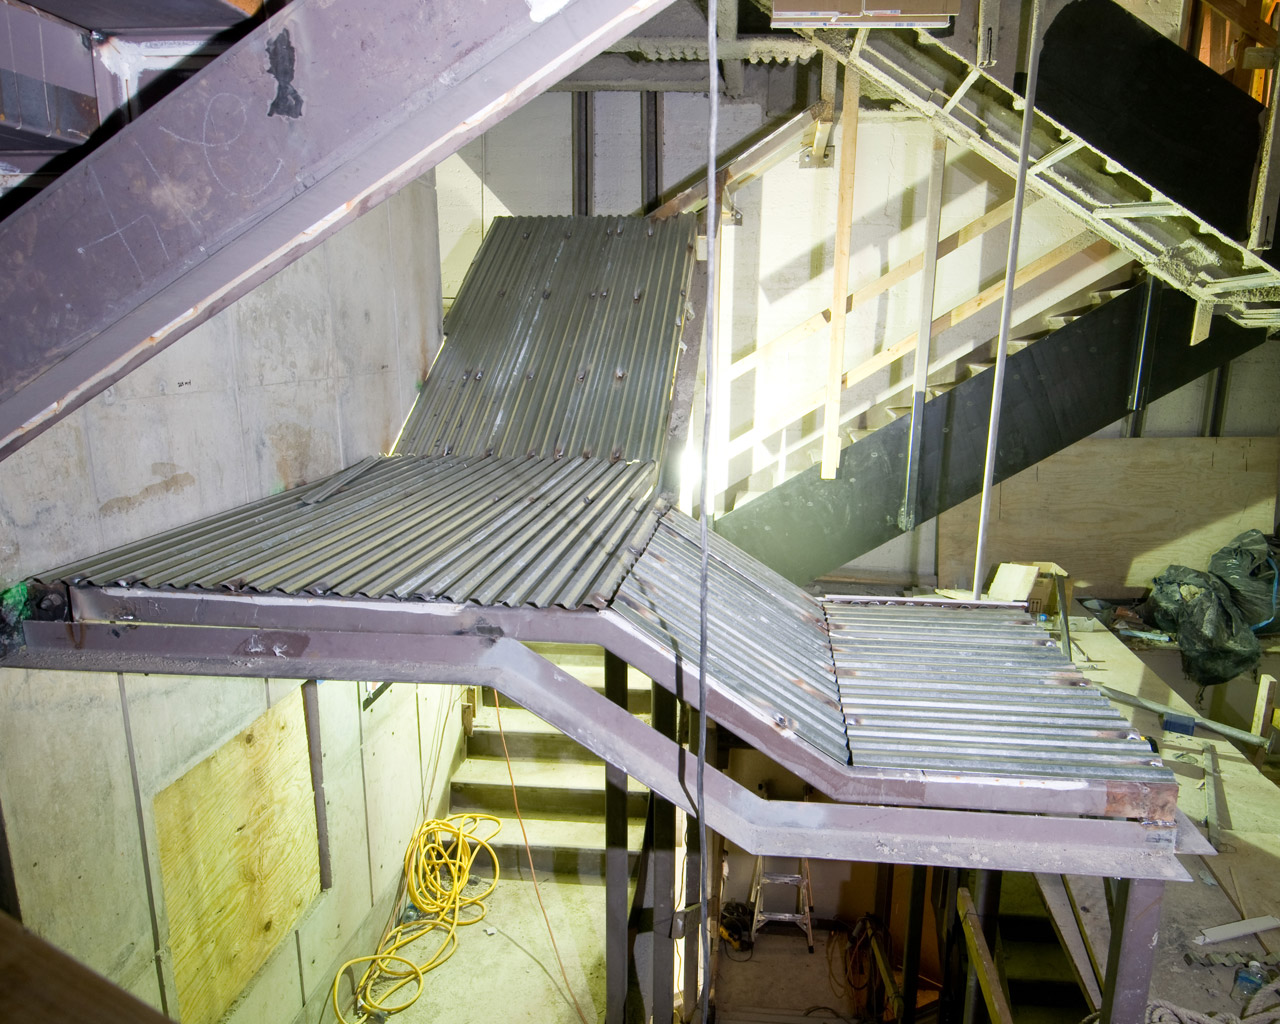 Fire Rated Enclosure on Stairs